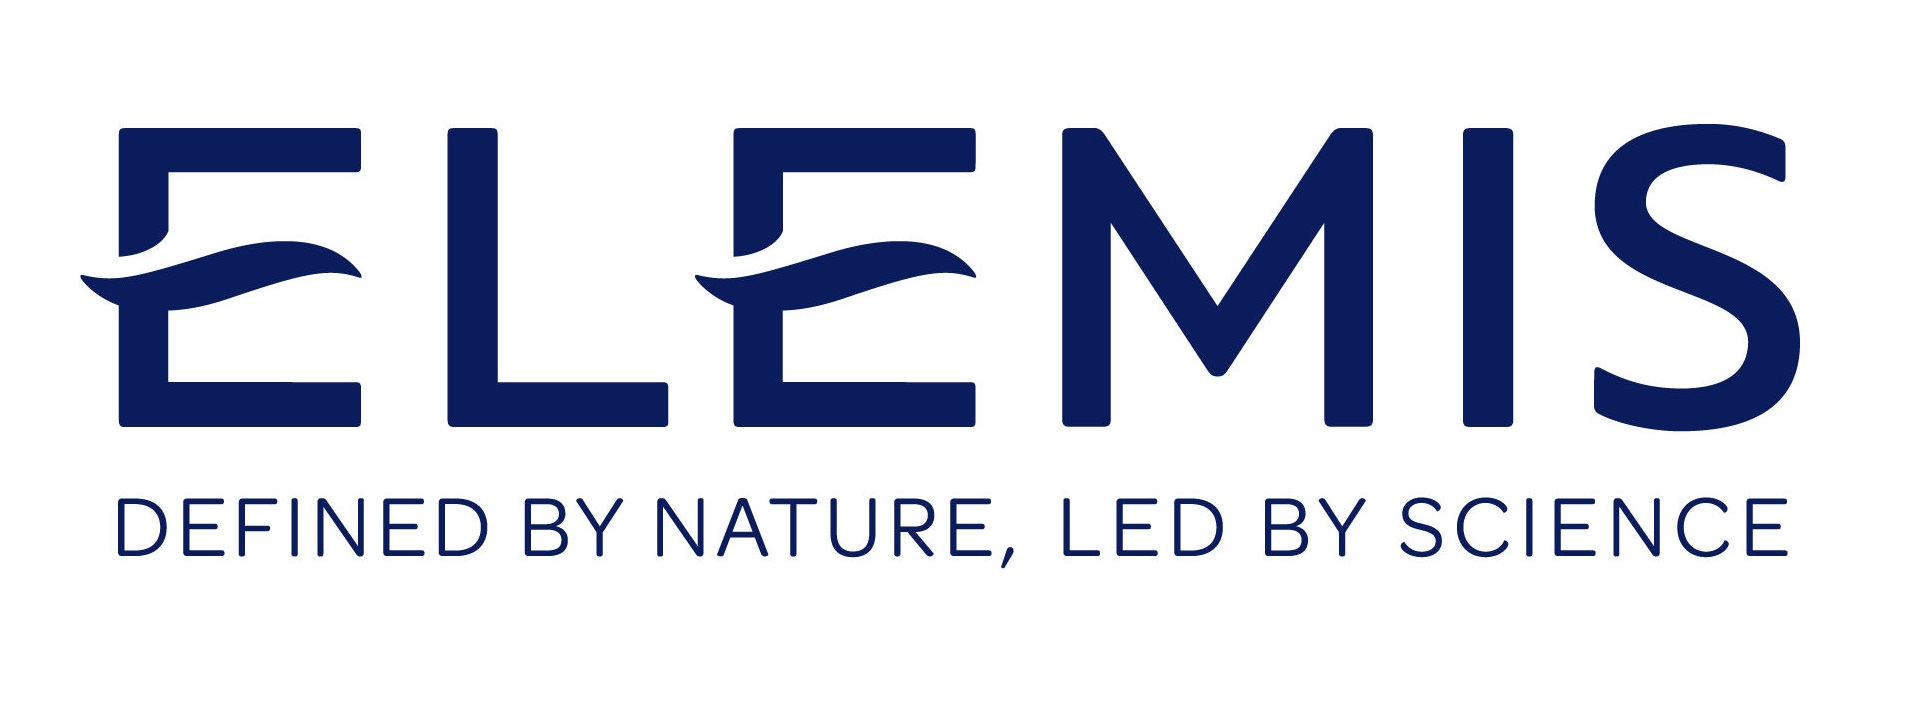 Stockists of ELEMIS